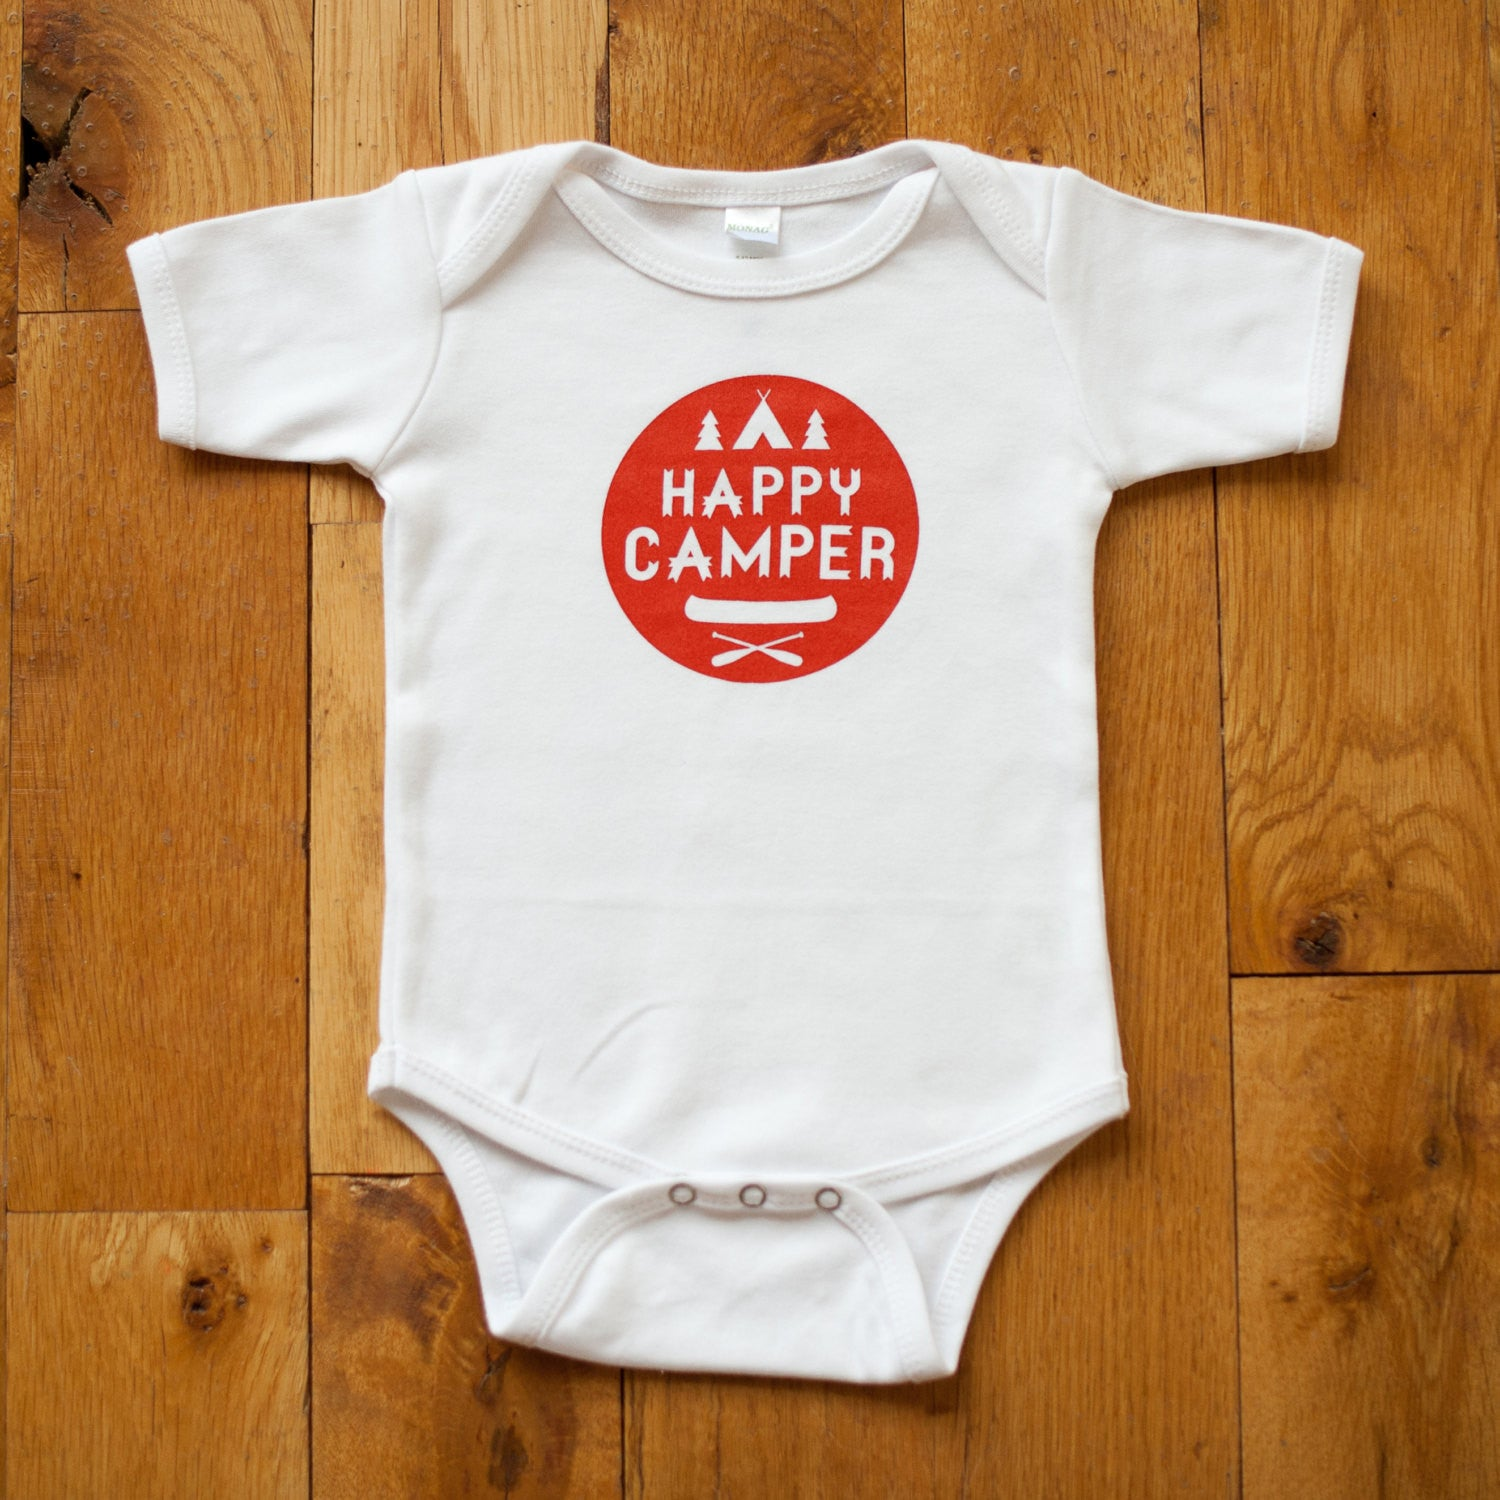 Happy Camper Baby Bodysuit - Sweetpea and Co.